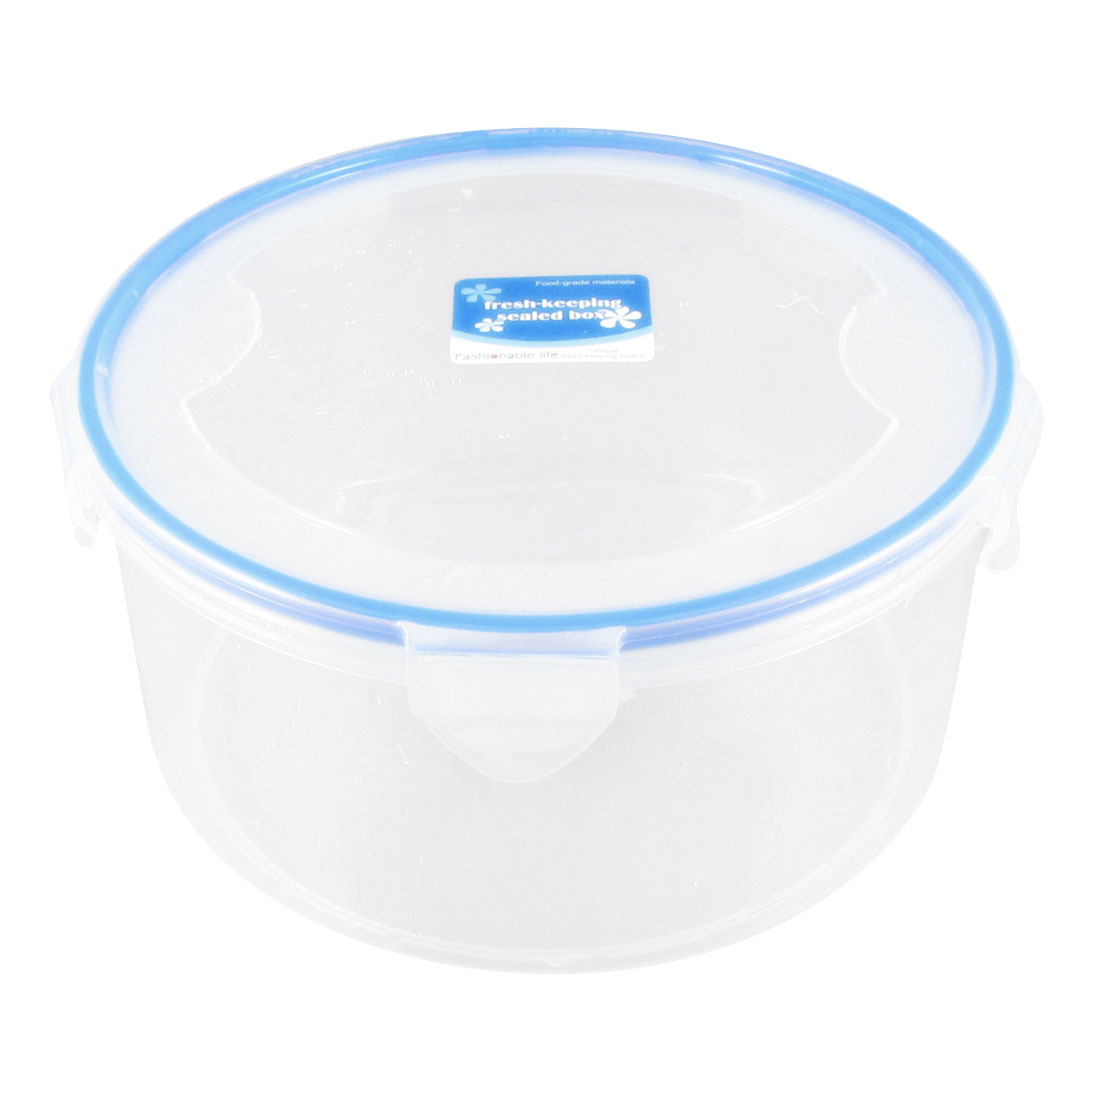 Clear White Plastic Sauces Vegetables Food Storage Container 1615ml w Lid